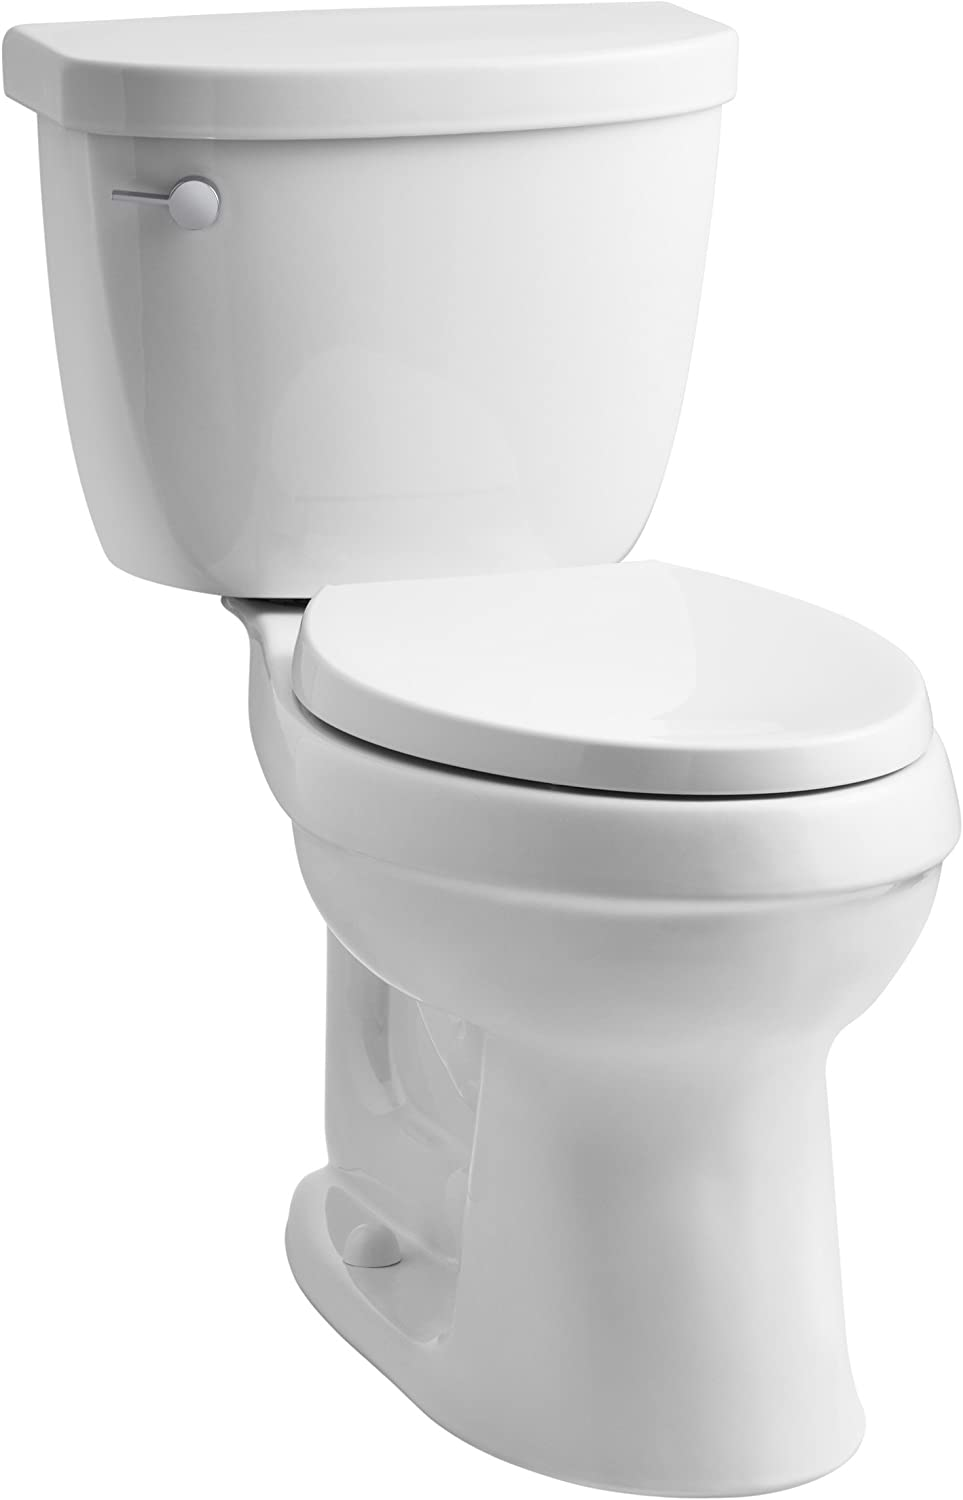 best comfort height toilets: KOHLER K-3609-0 Cimarron Comfort Height Toilet